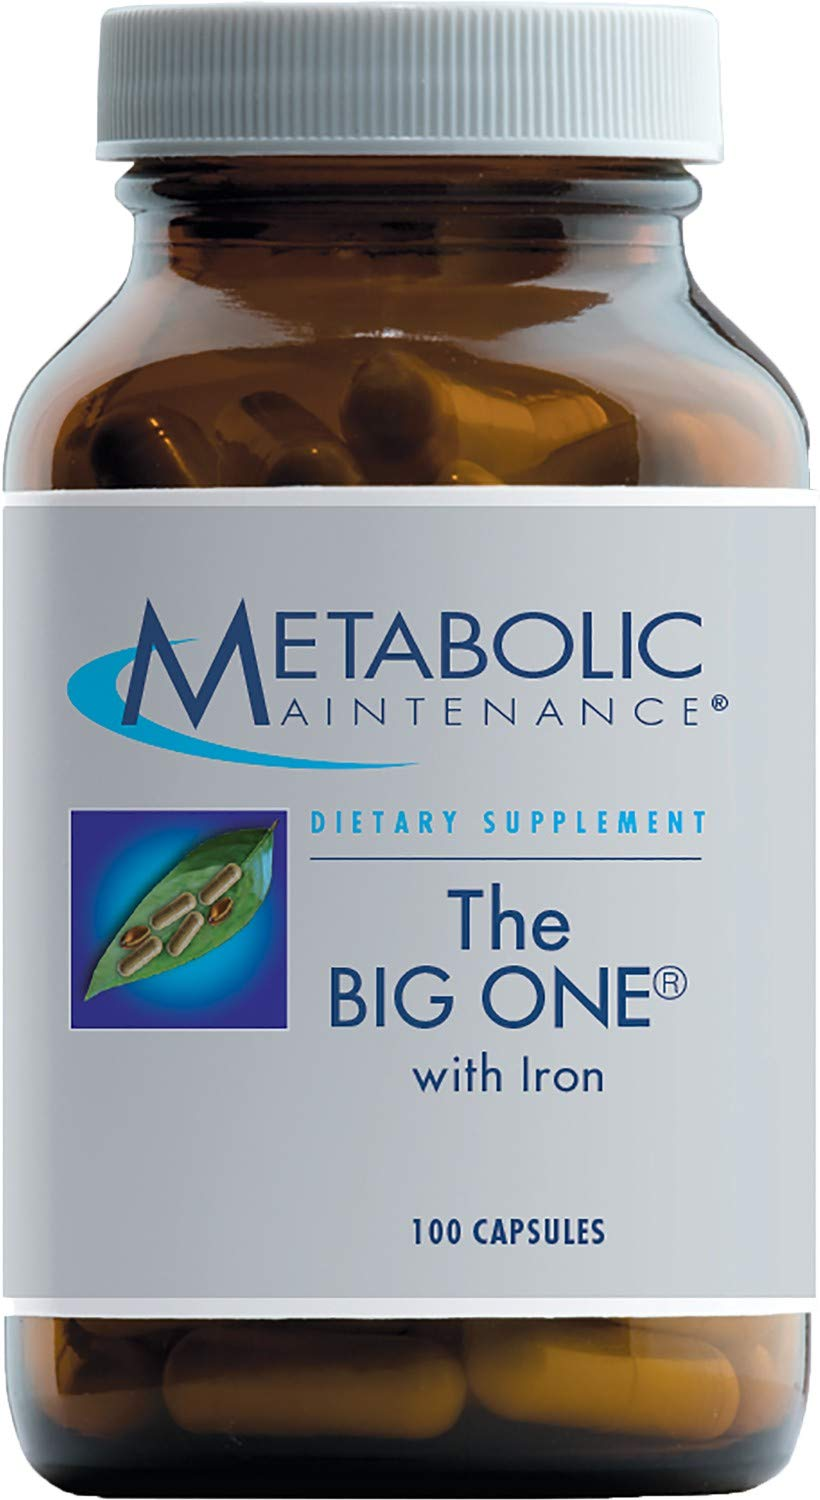 Metabolic Maintenance The Big One - Multivitamin with Iron, Active Folate + Vitamin K (100 Capsules)